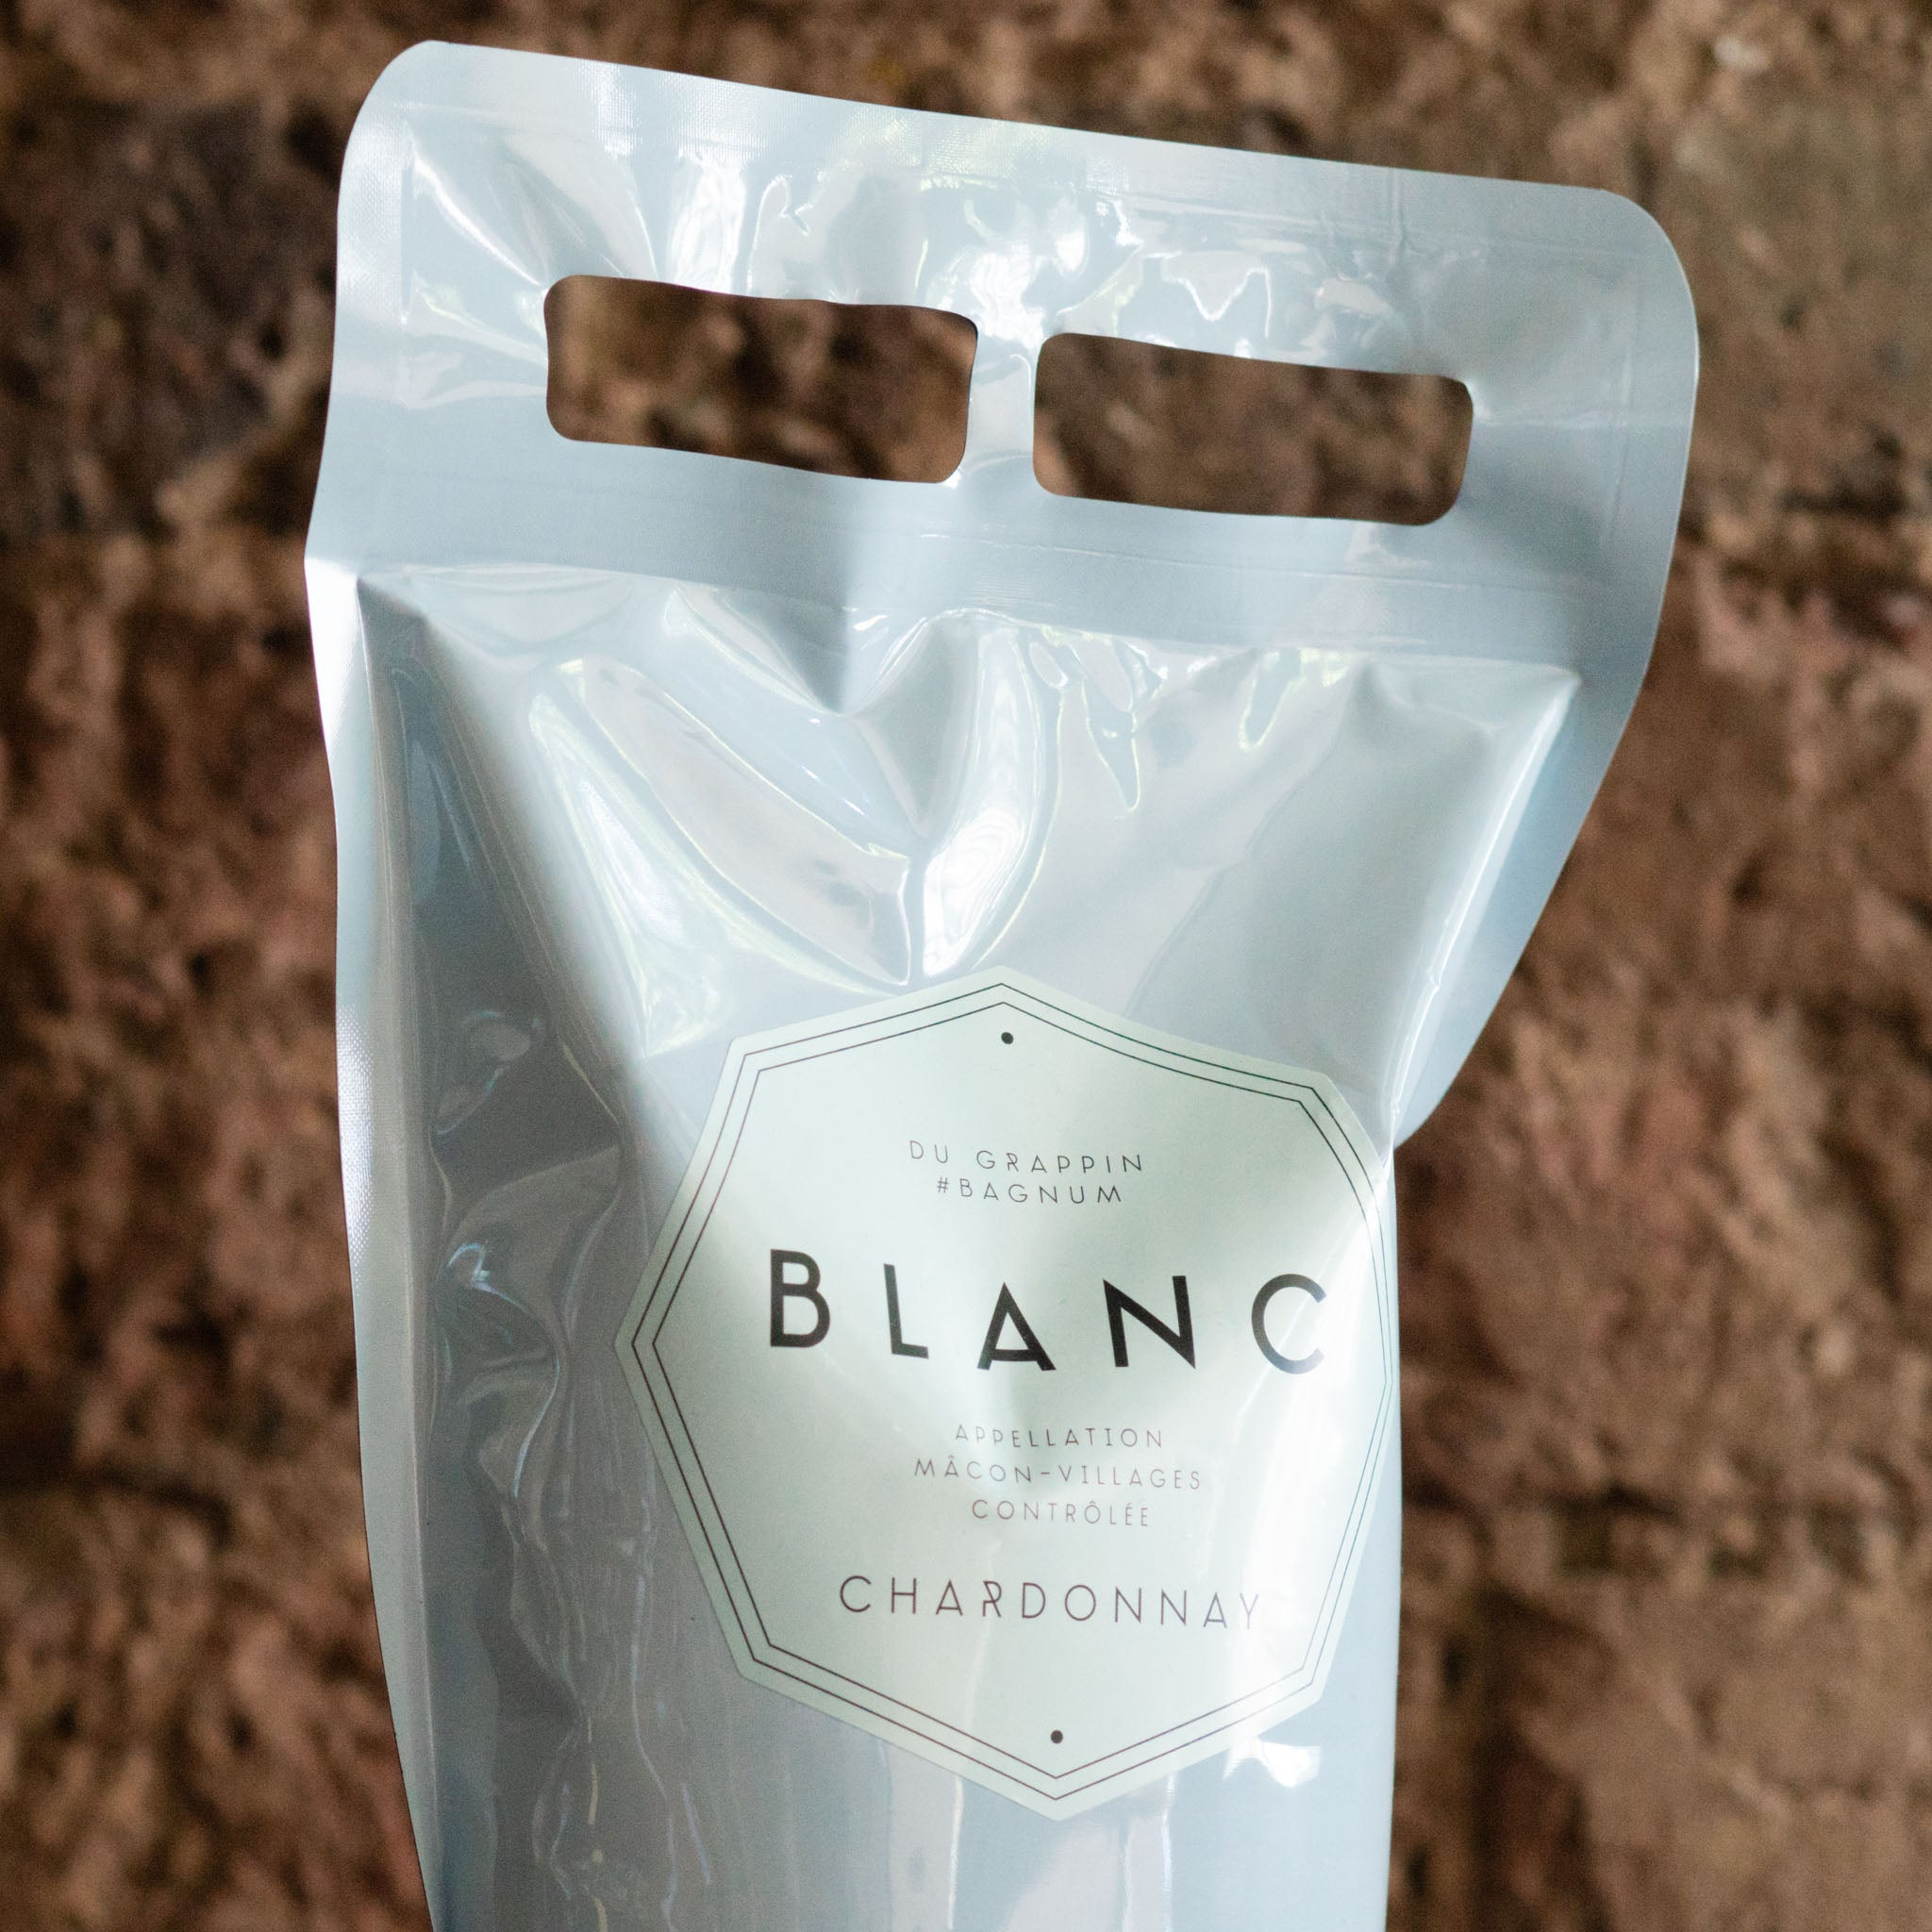 Blanc du Grappin 2019, France (Bagnum)